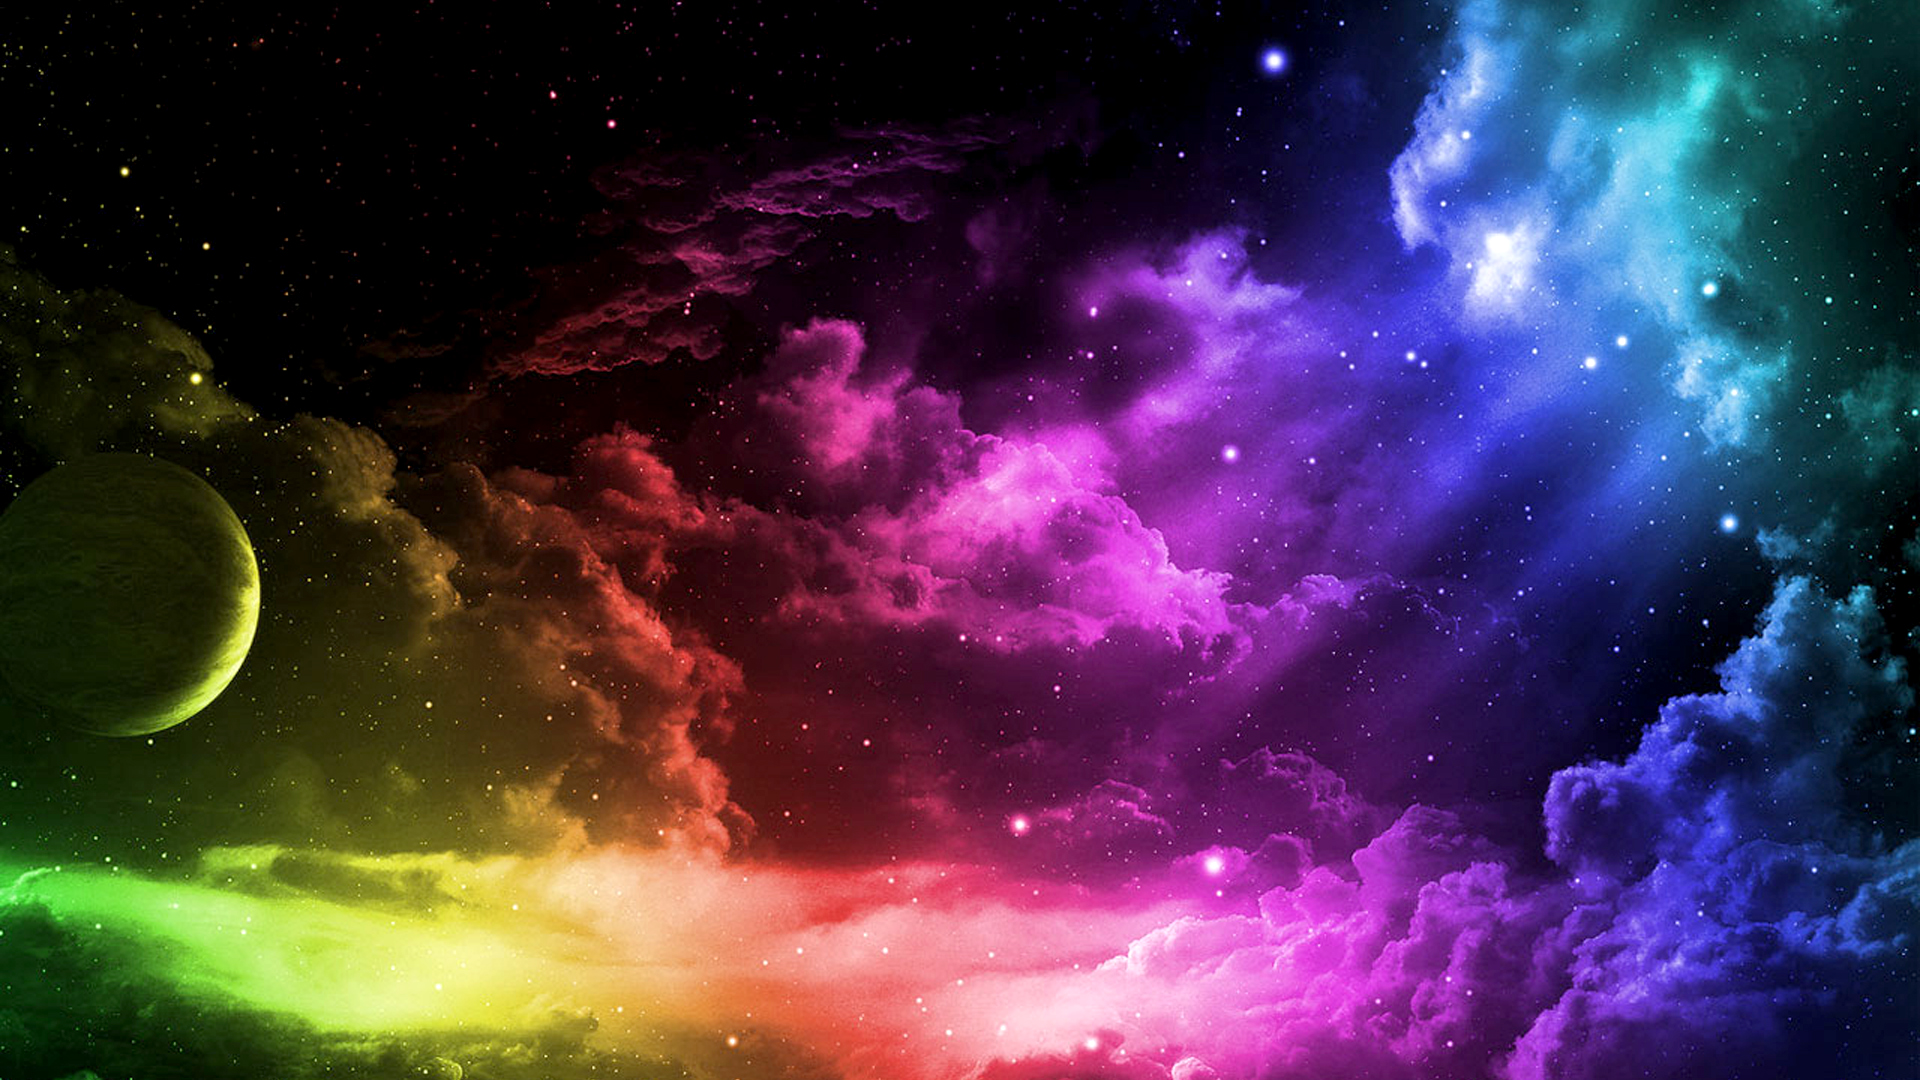 Colorful Desktop Backgrounds Wallpaper